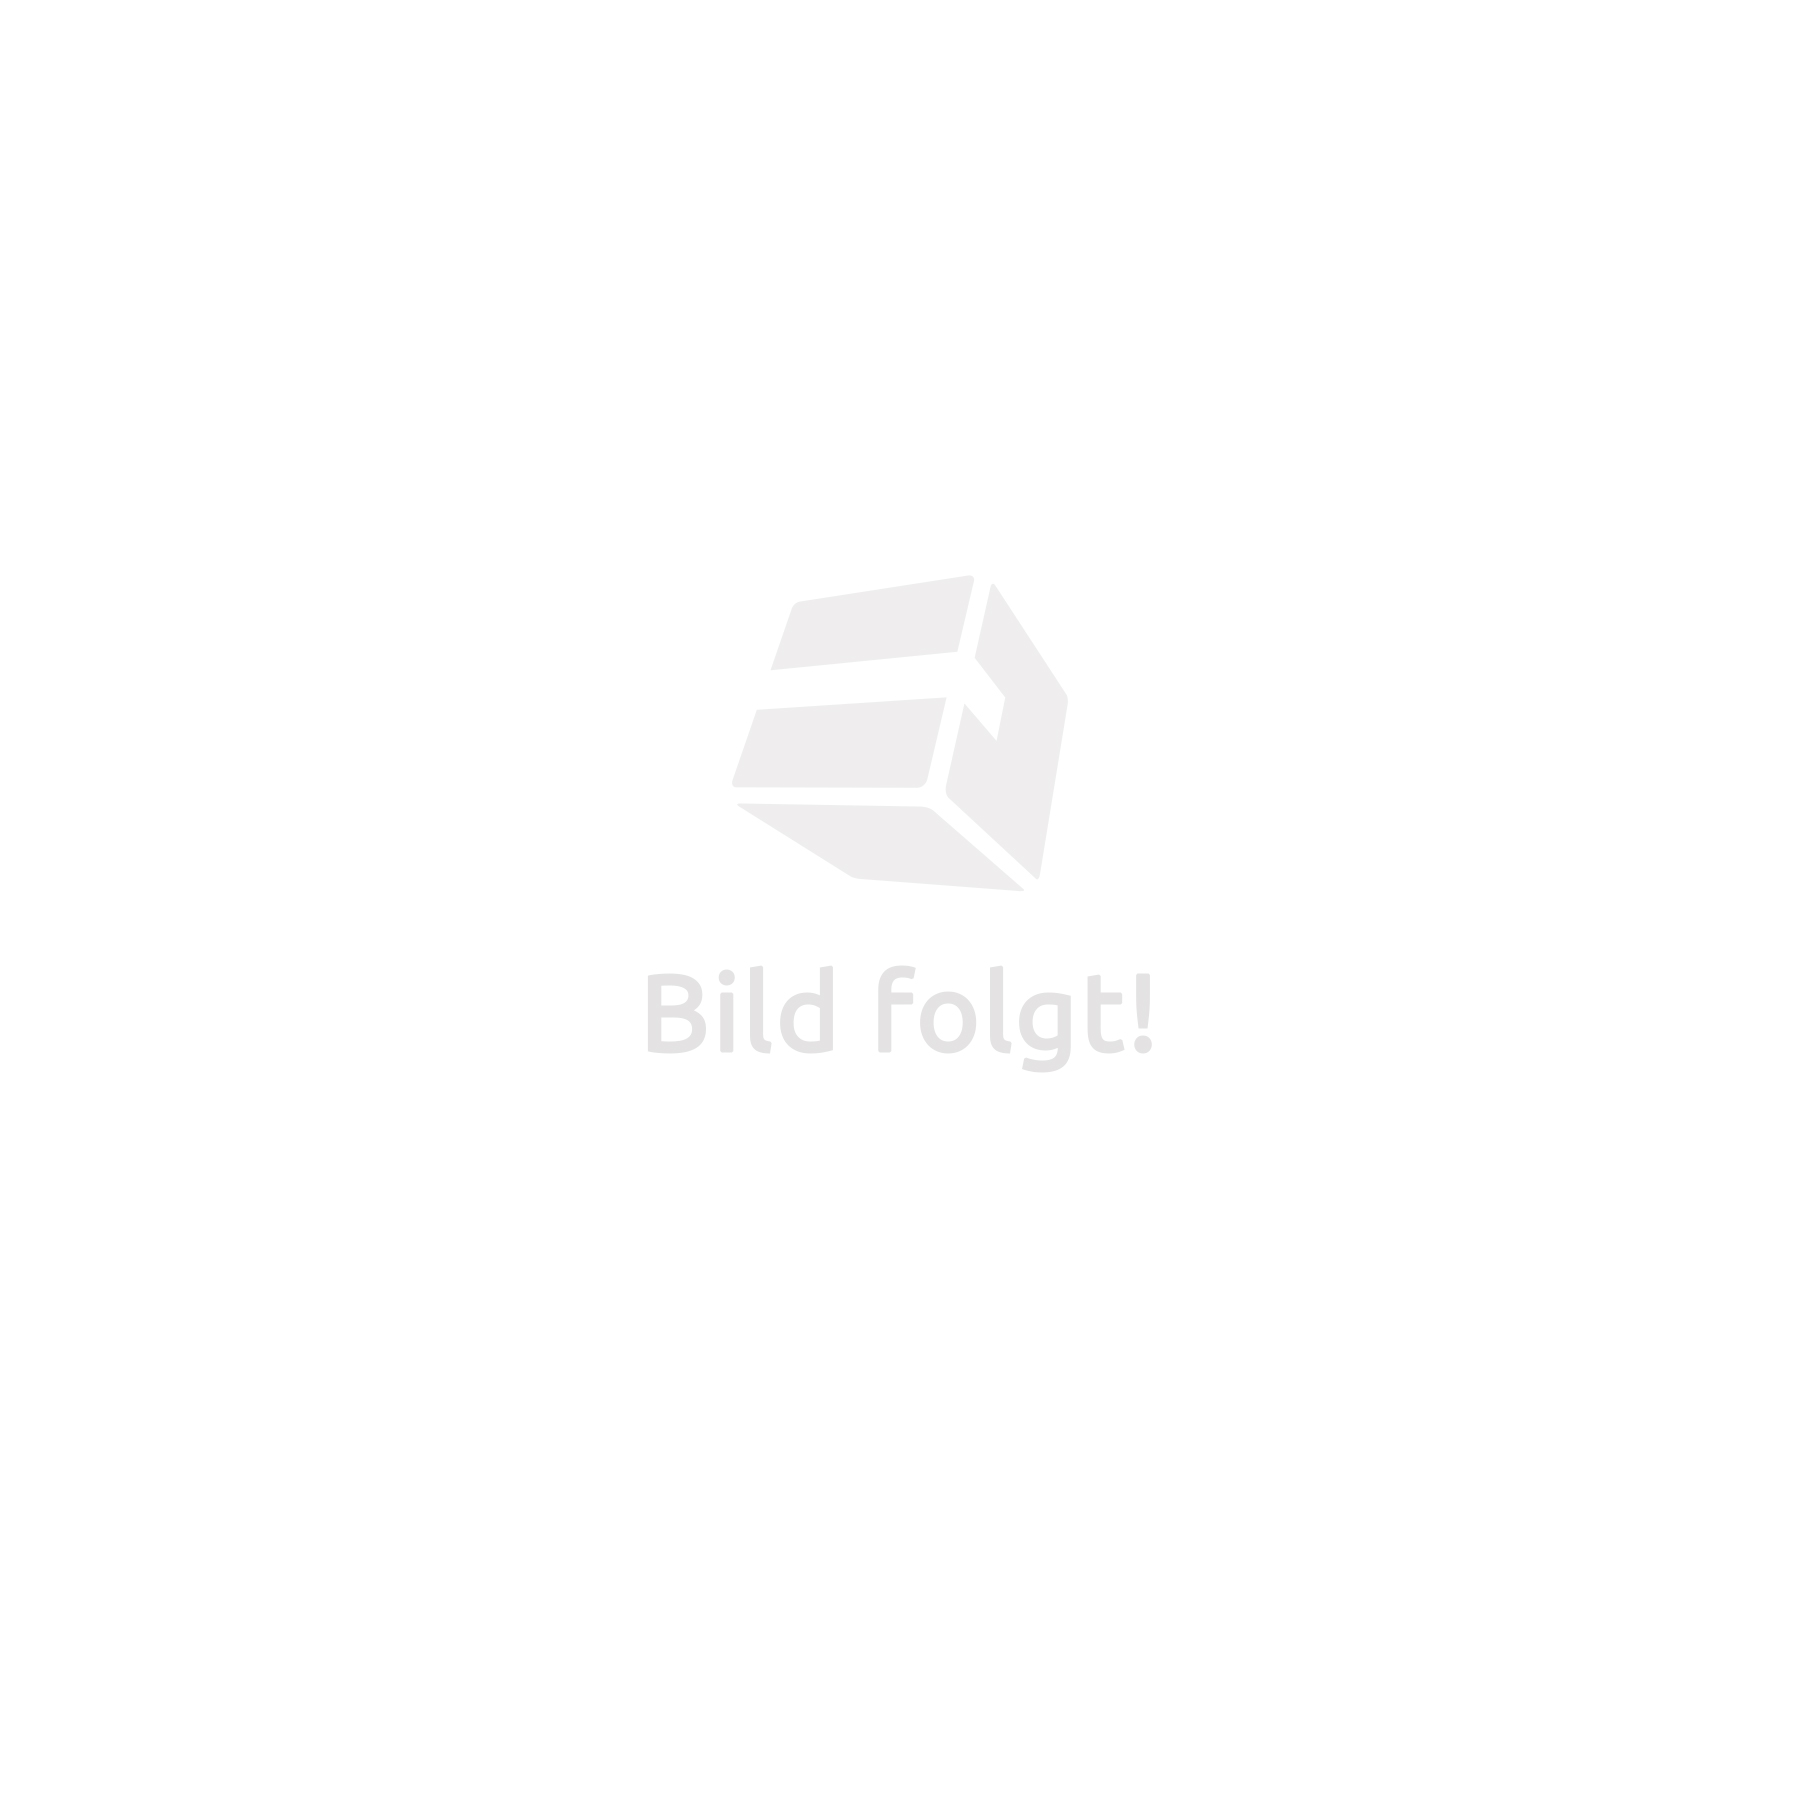 Lot de 6 chaises table salle manger ensemble cuisine for Ensemble table et 6 chaise salle a manger